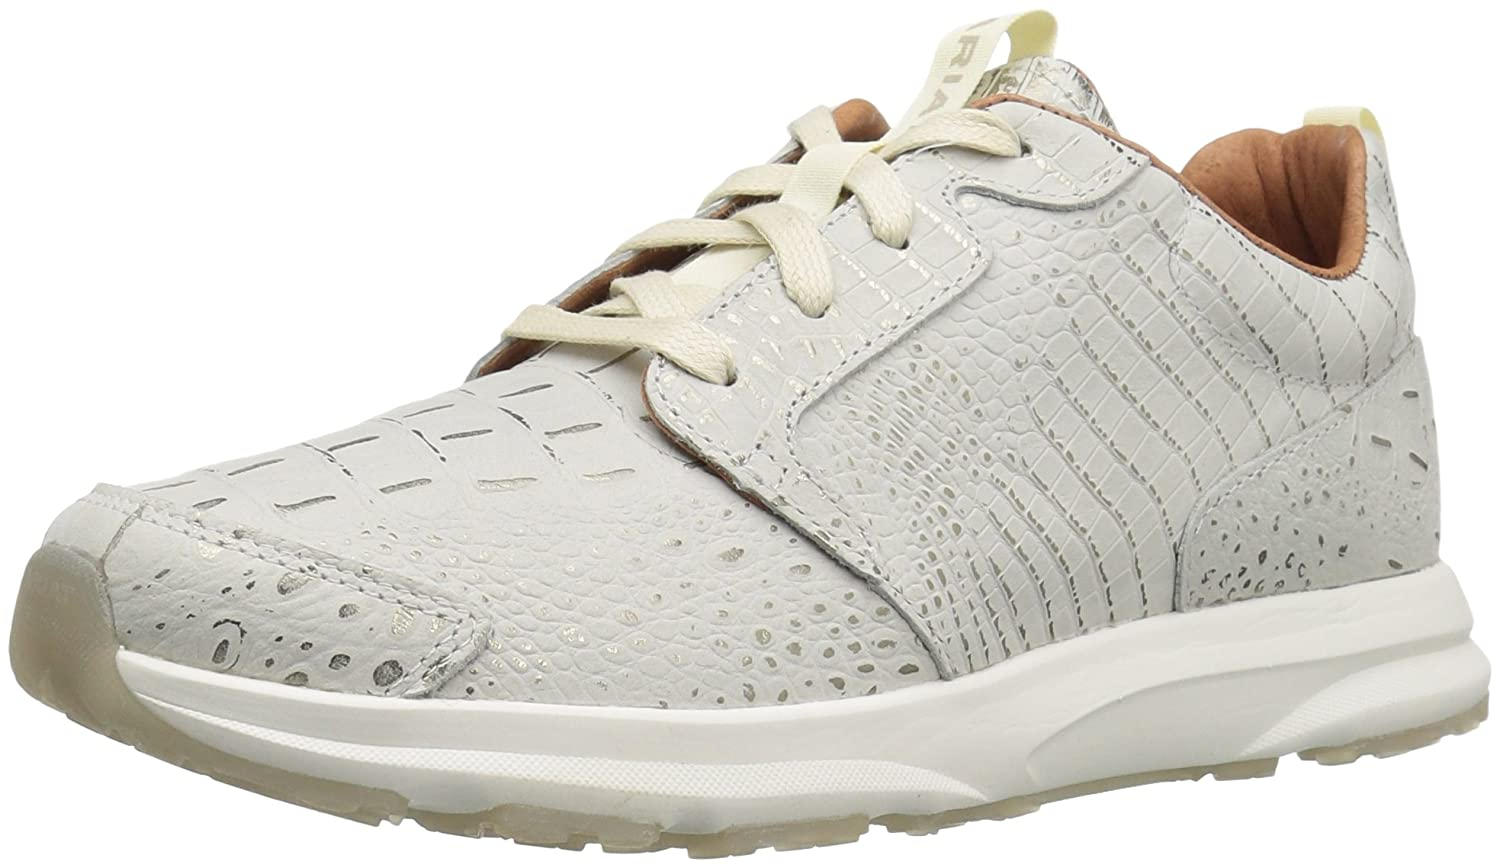 Ariat Women's Fusion Athletic Shoe B01C3AN05G 7 B(M) US|Electric Crocodile